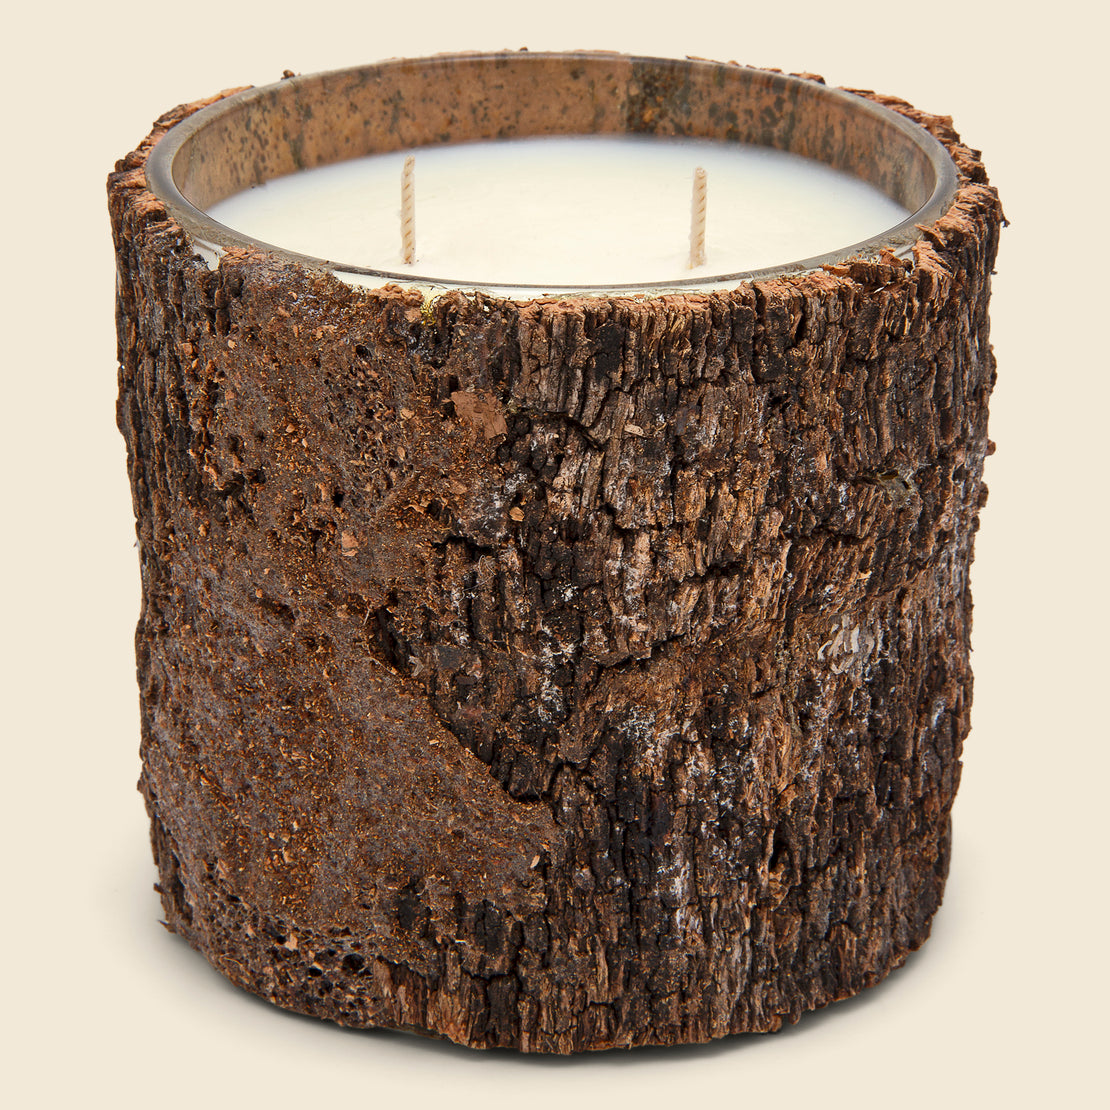 STAG Winter Woods Candle - 32oz Bark